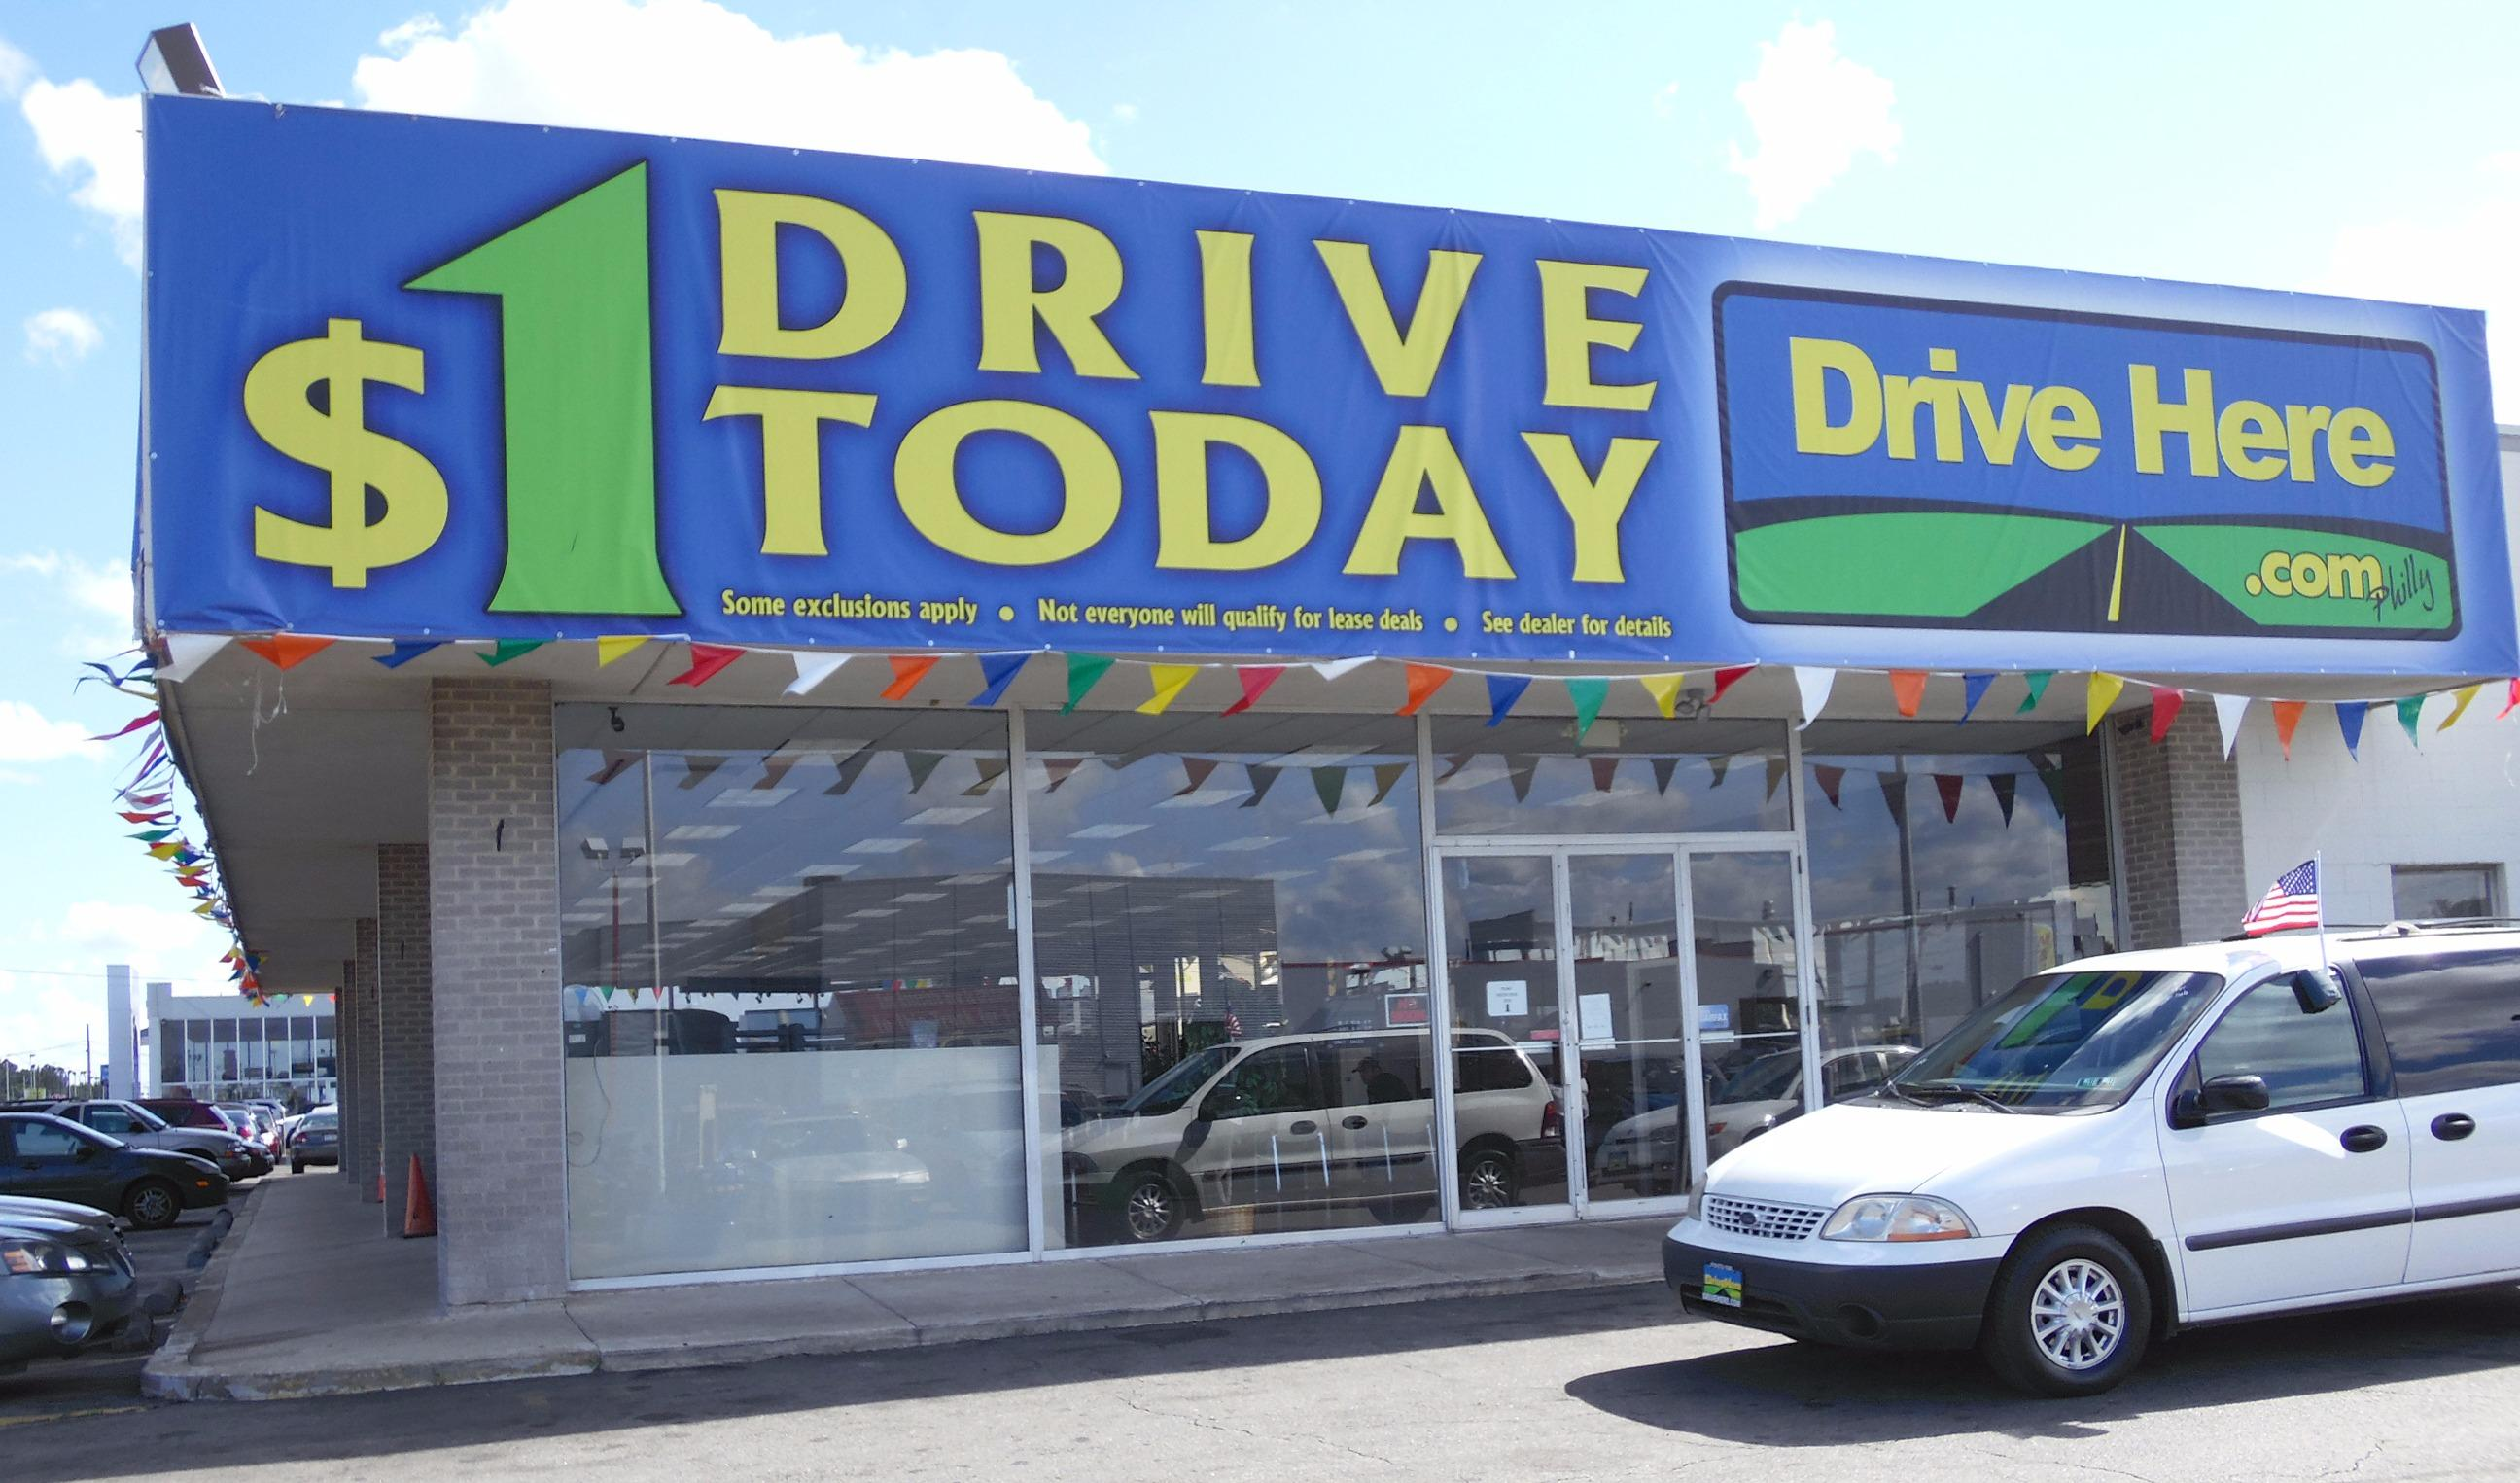 drivehere drive here philly in philadelphia pa 19153. Black Bedroom Furniture Sets. Home Design Ideas